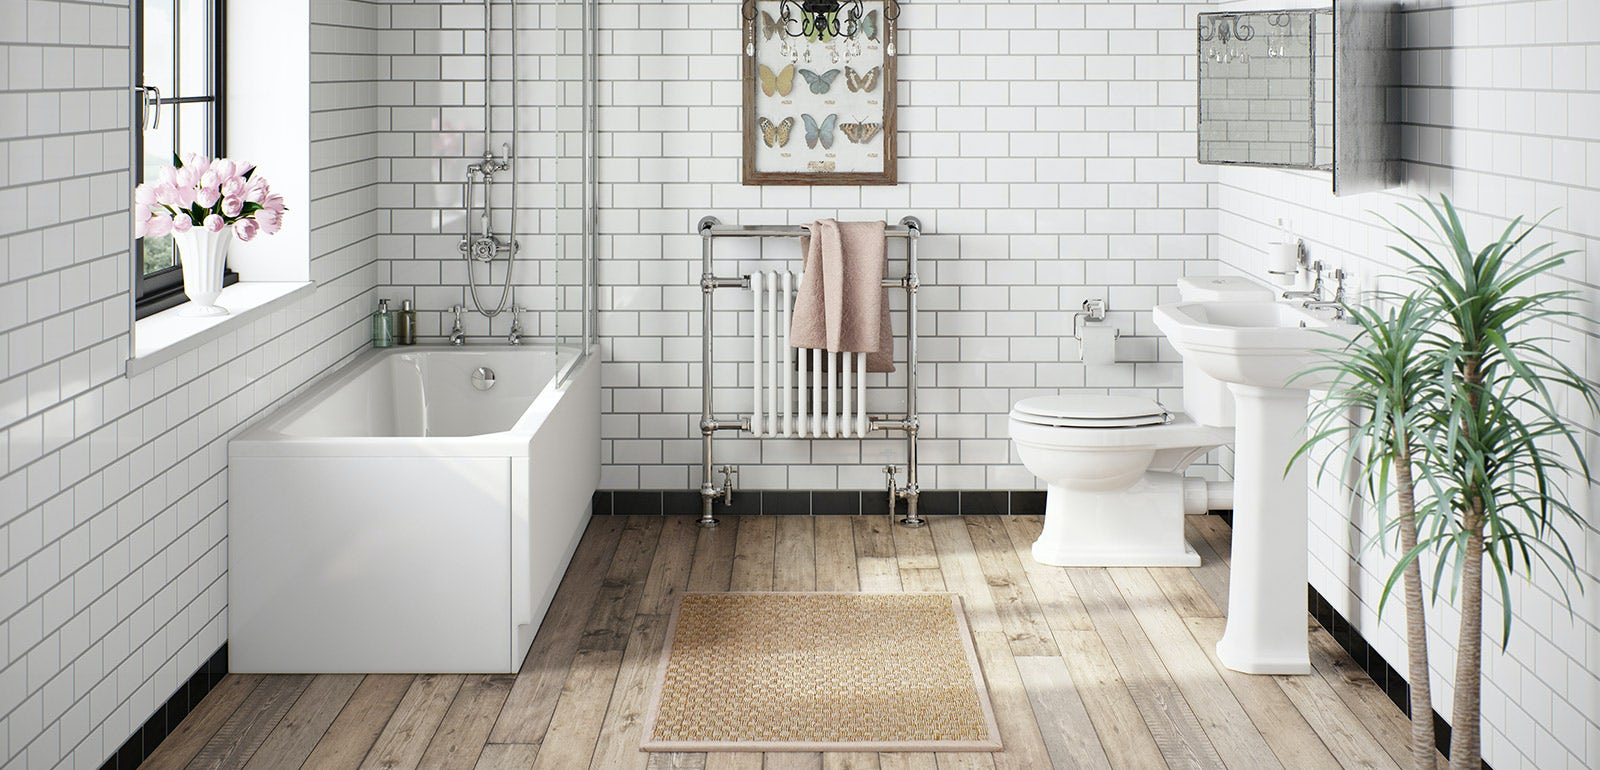 Bathroom Tiles Victoria Bc different ways to use metro tiles | victoriaplum